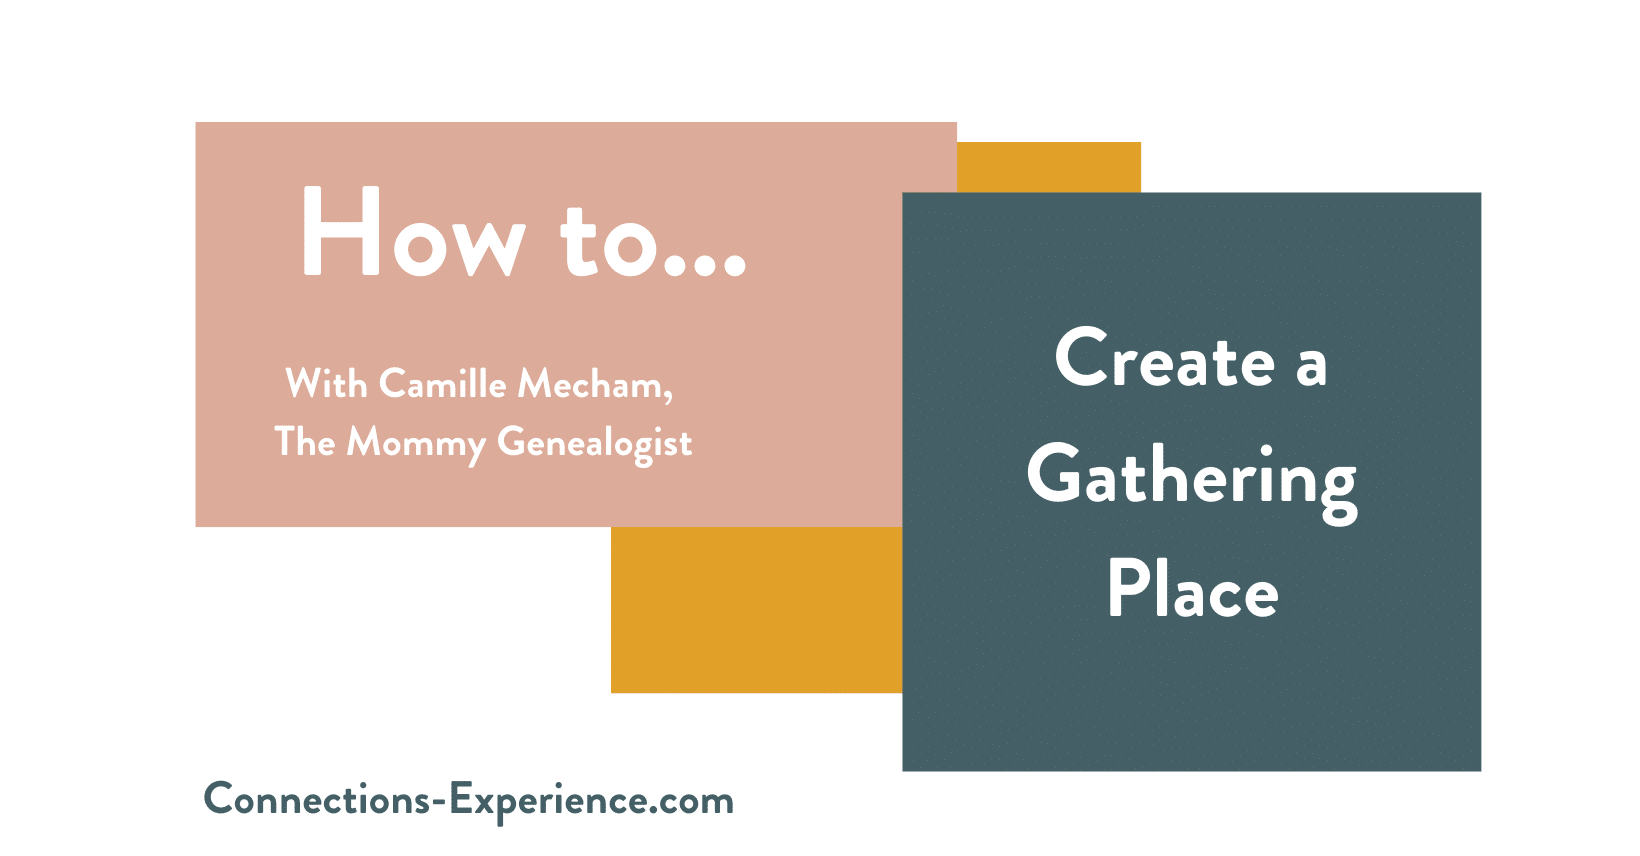 How To Create a Gathering Place